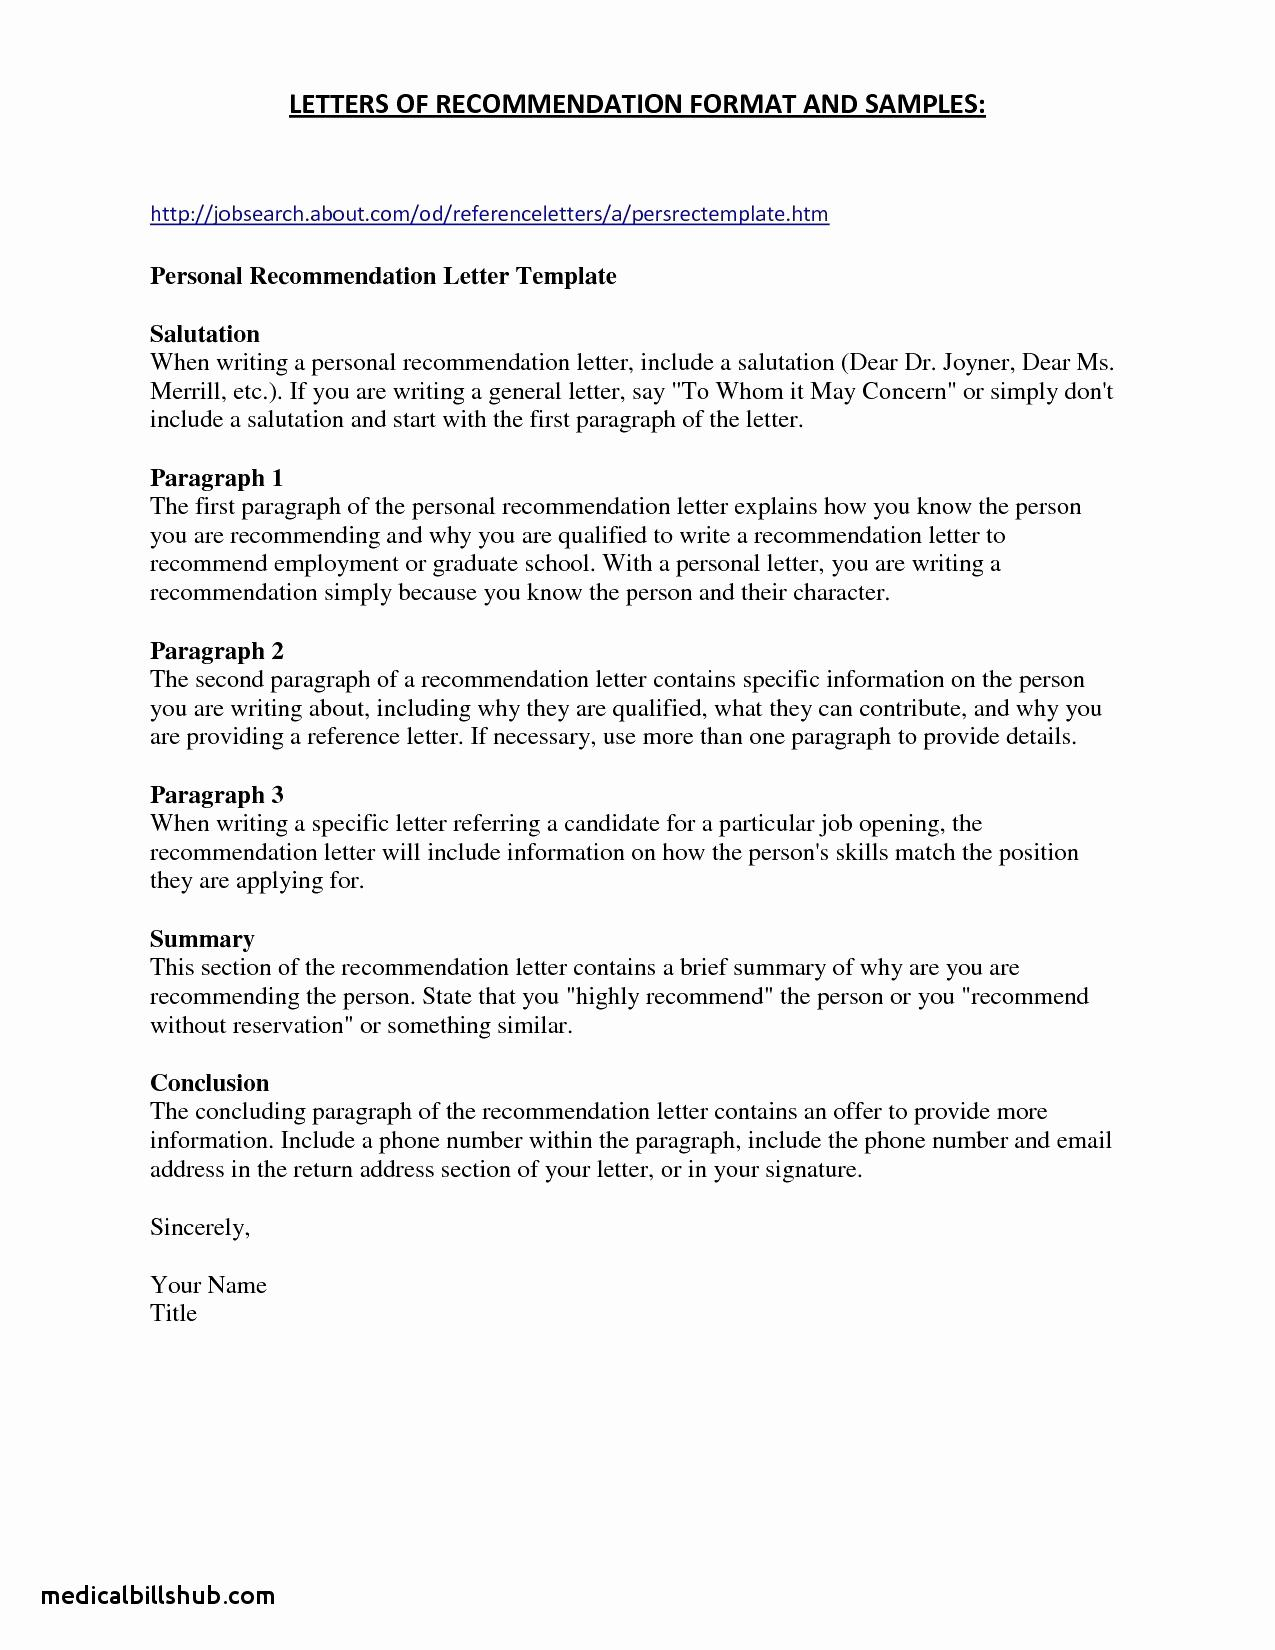 Medical assistant Resume with No Experience - Cna Cover Letter Examples Beautiful Medical assistant Cover Letter